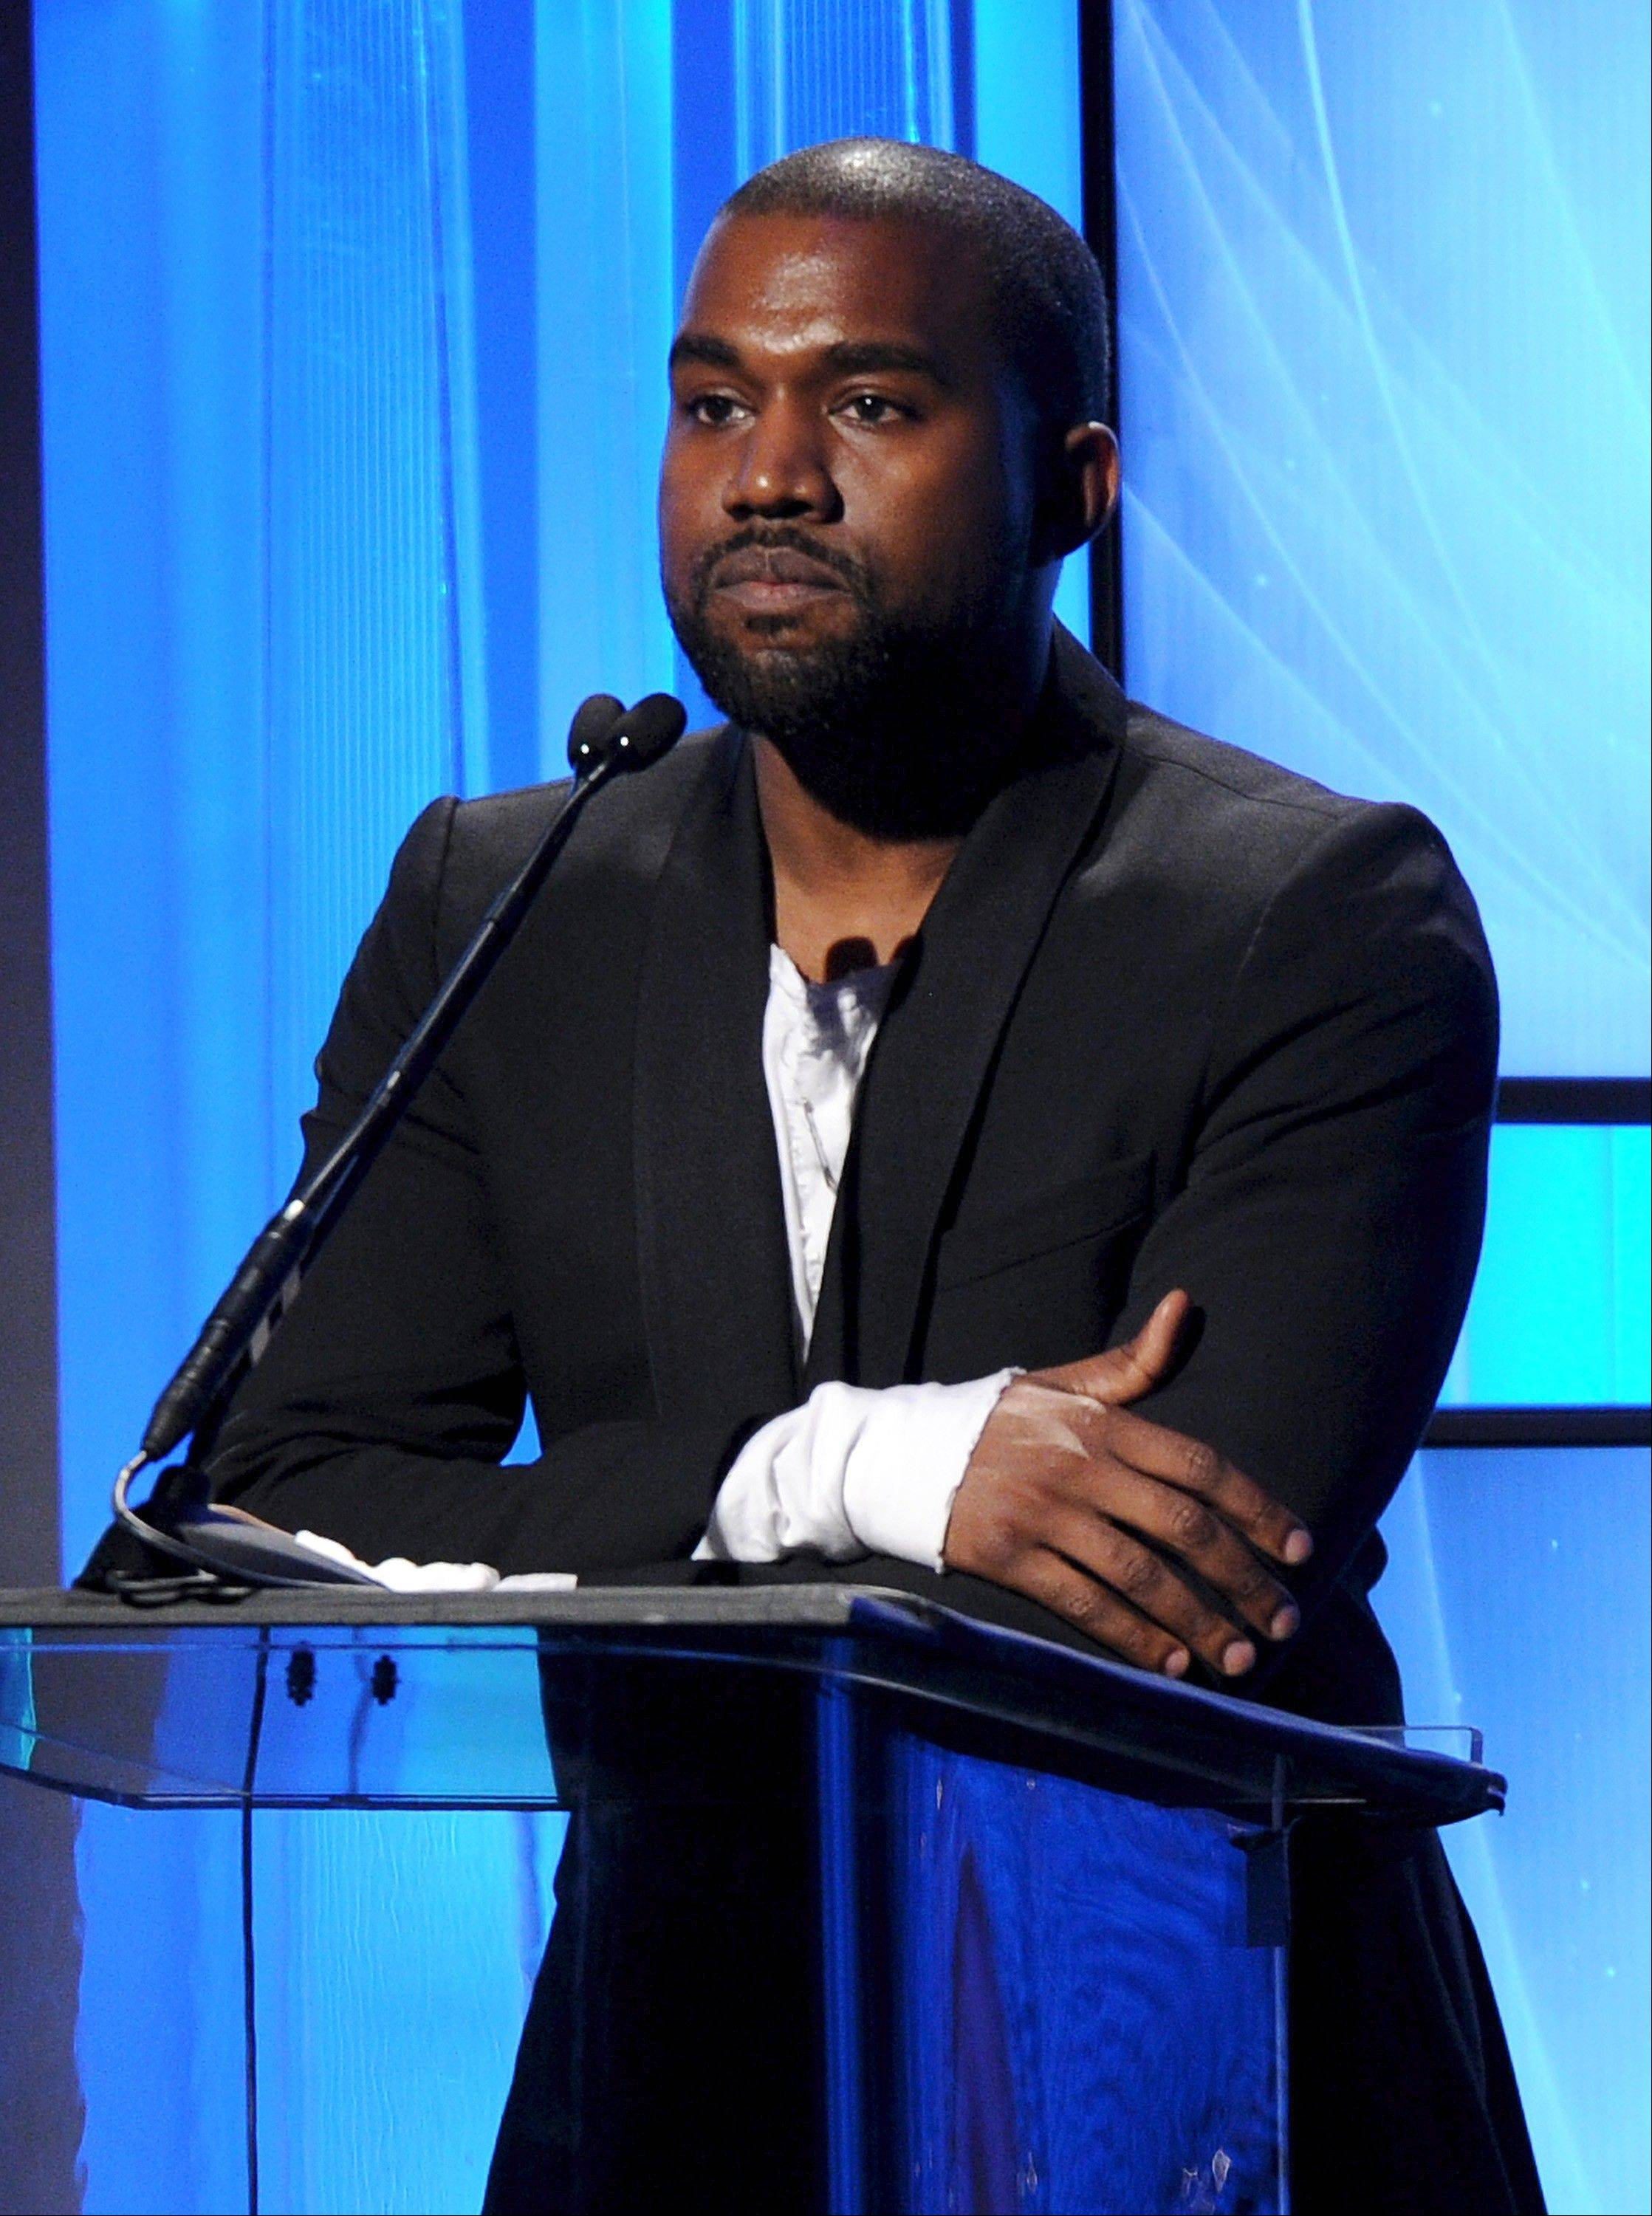 Beverly Hills police say they�re investigating Kanye West for misdemeanor battery after a man accused the rapper of attacking him.